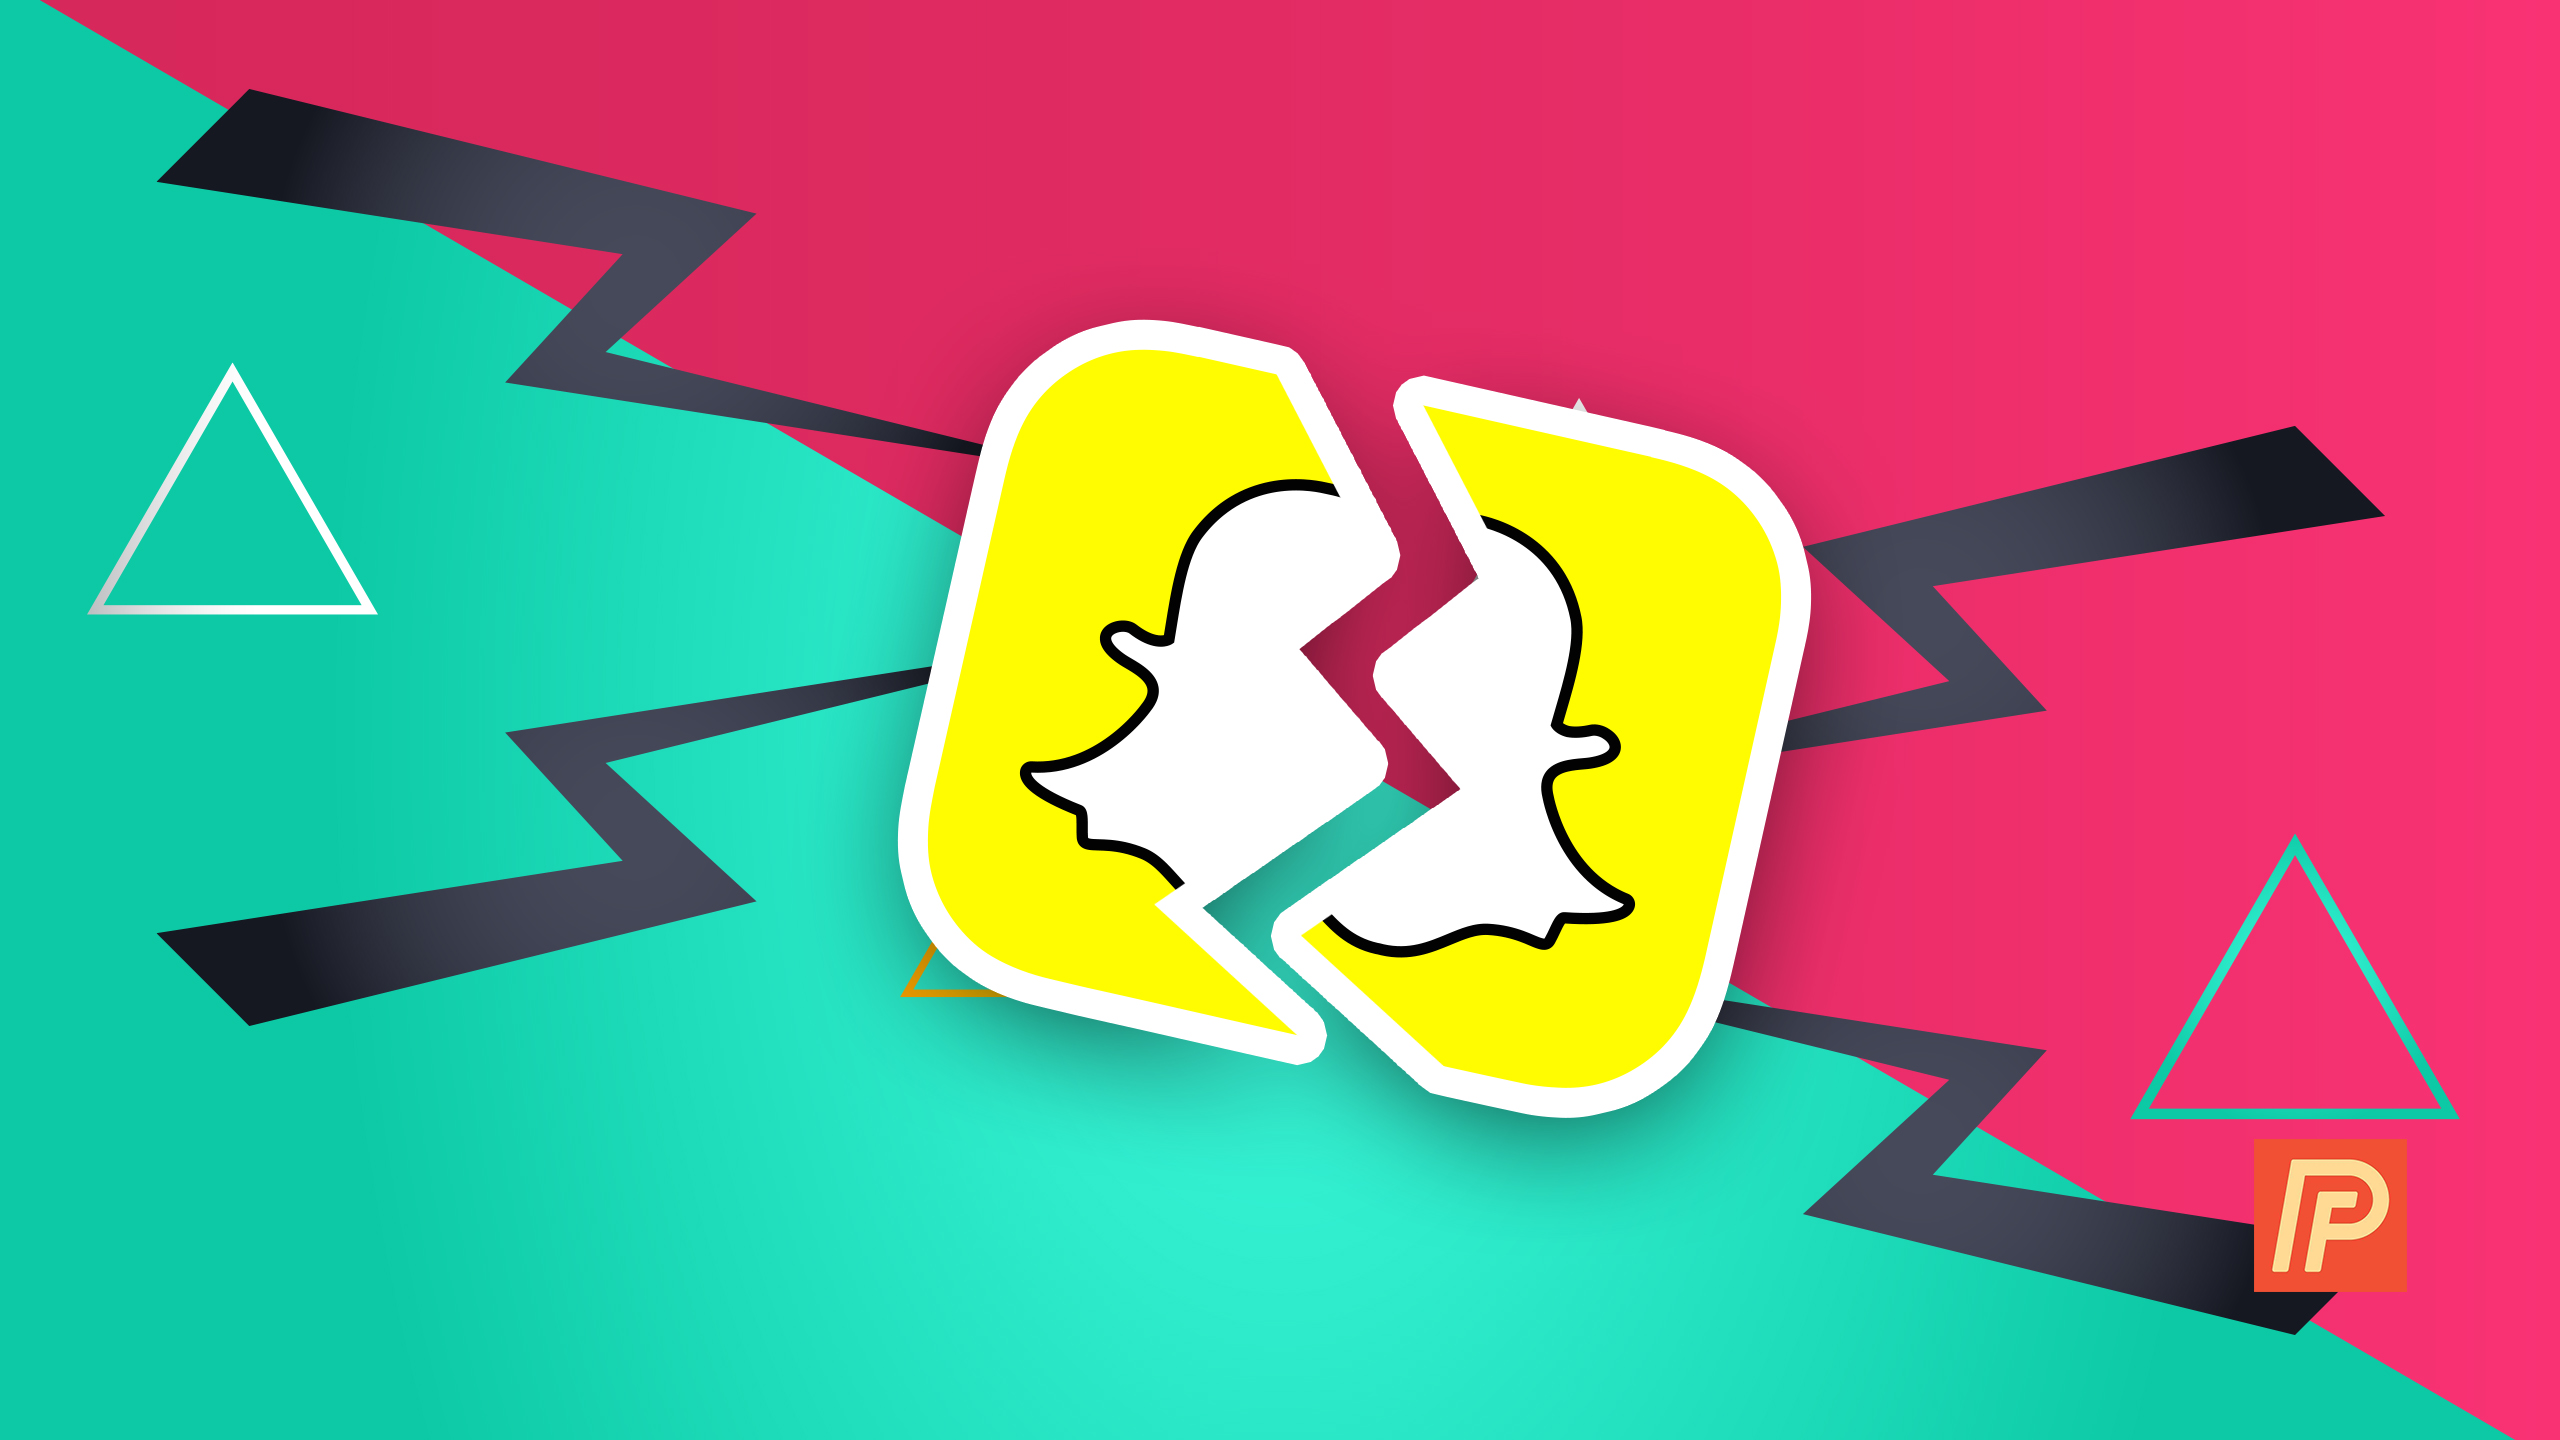 Snapchat Not Working On WiFi? Here's The Real Fix For iPhones & iPads!